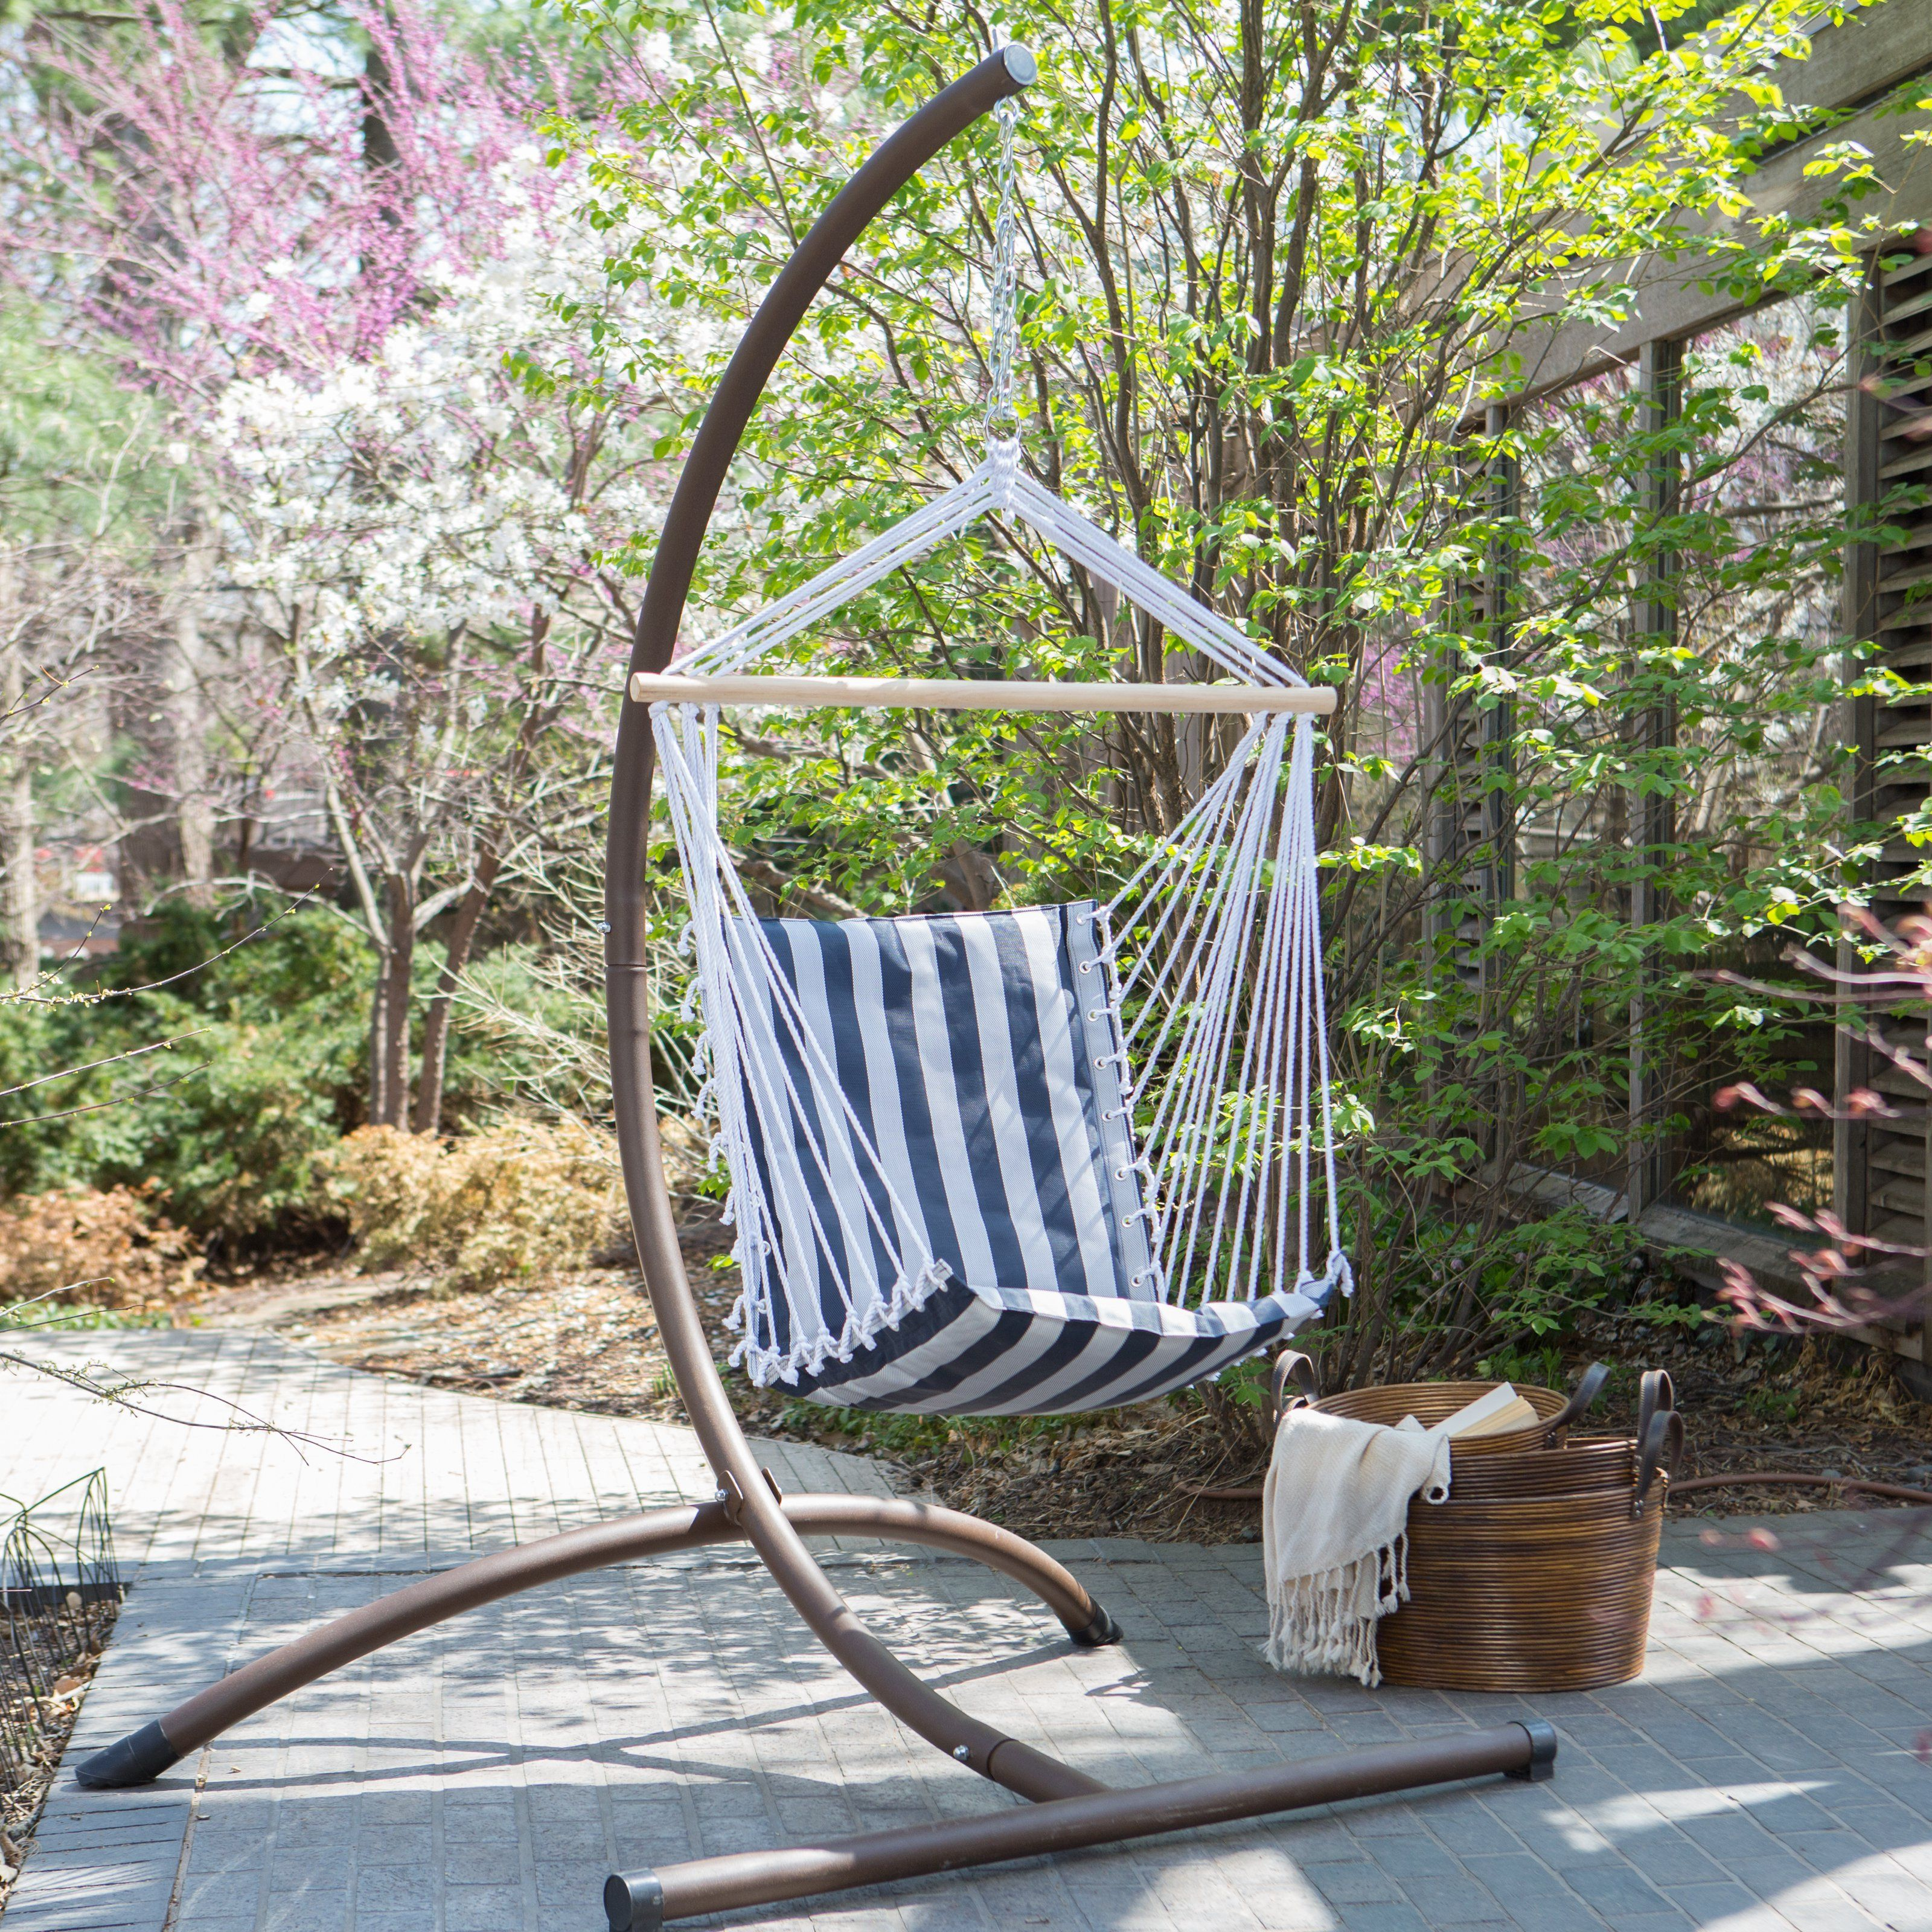 a my home cushions swinging little i cheated recovering swing on outdoor chair